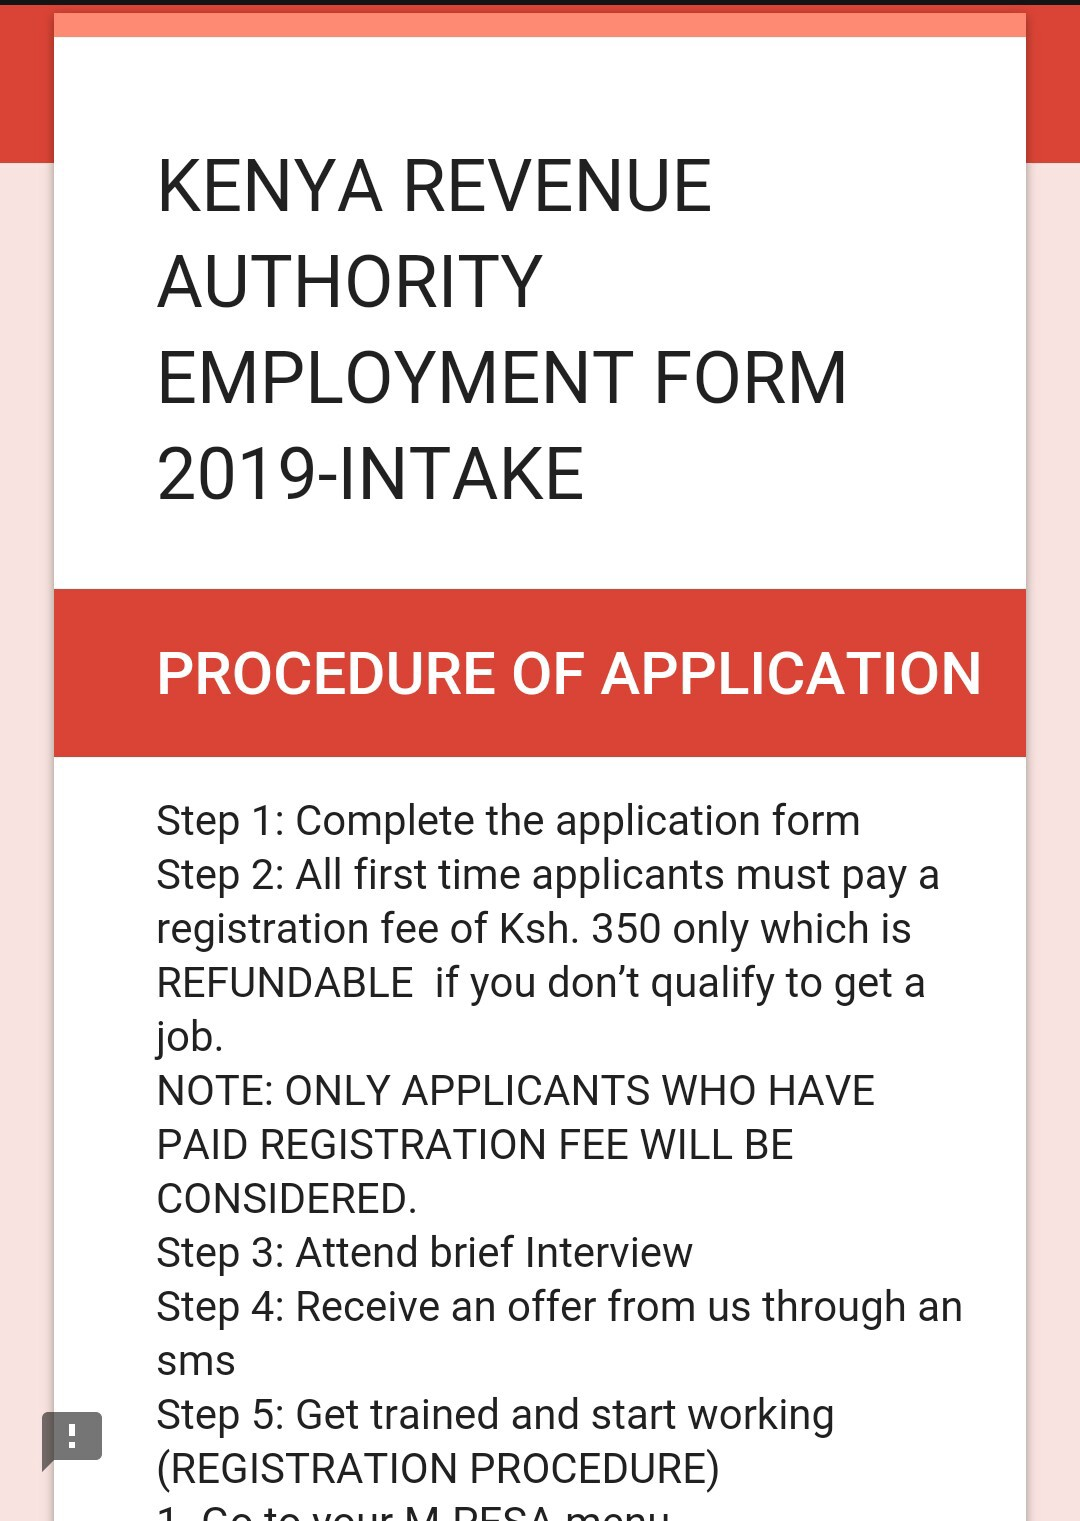 HOAX: This ad asking for a fee to apply for jobs at KRA is fake